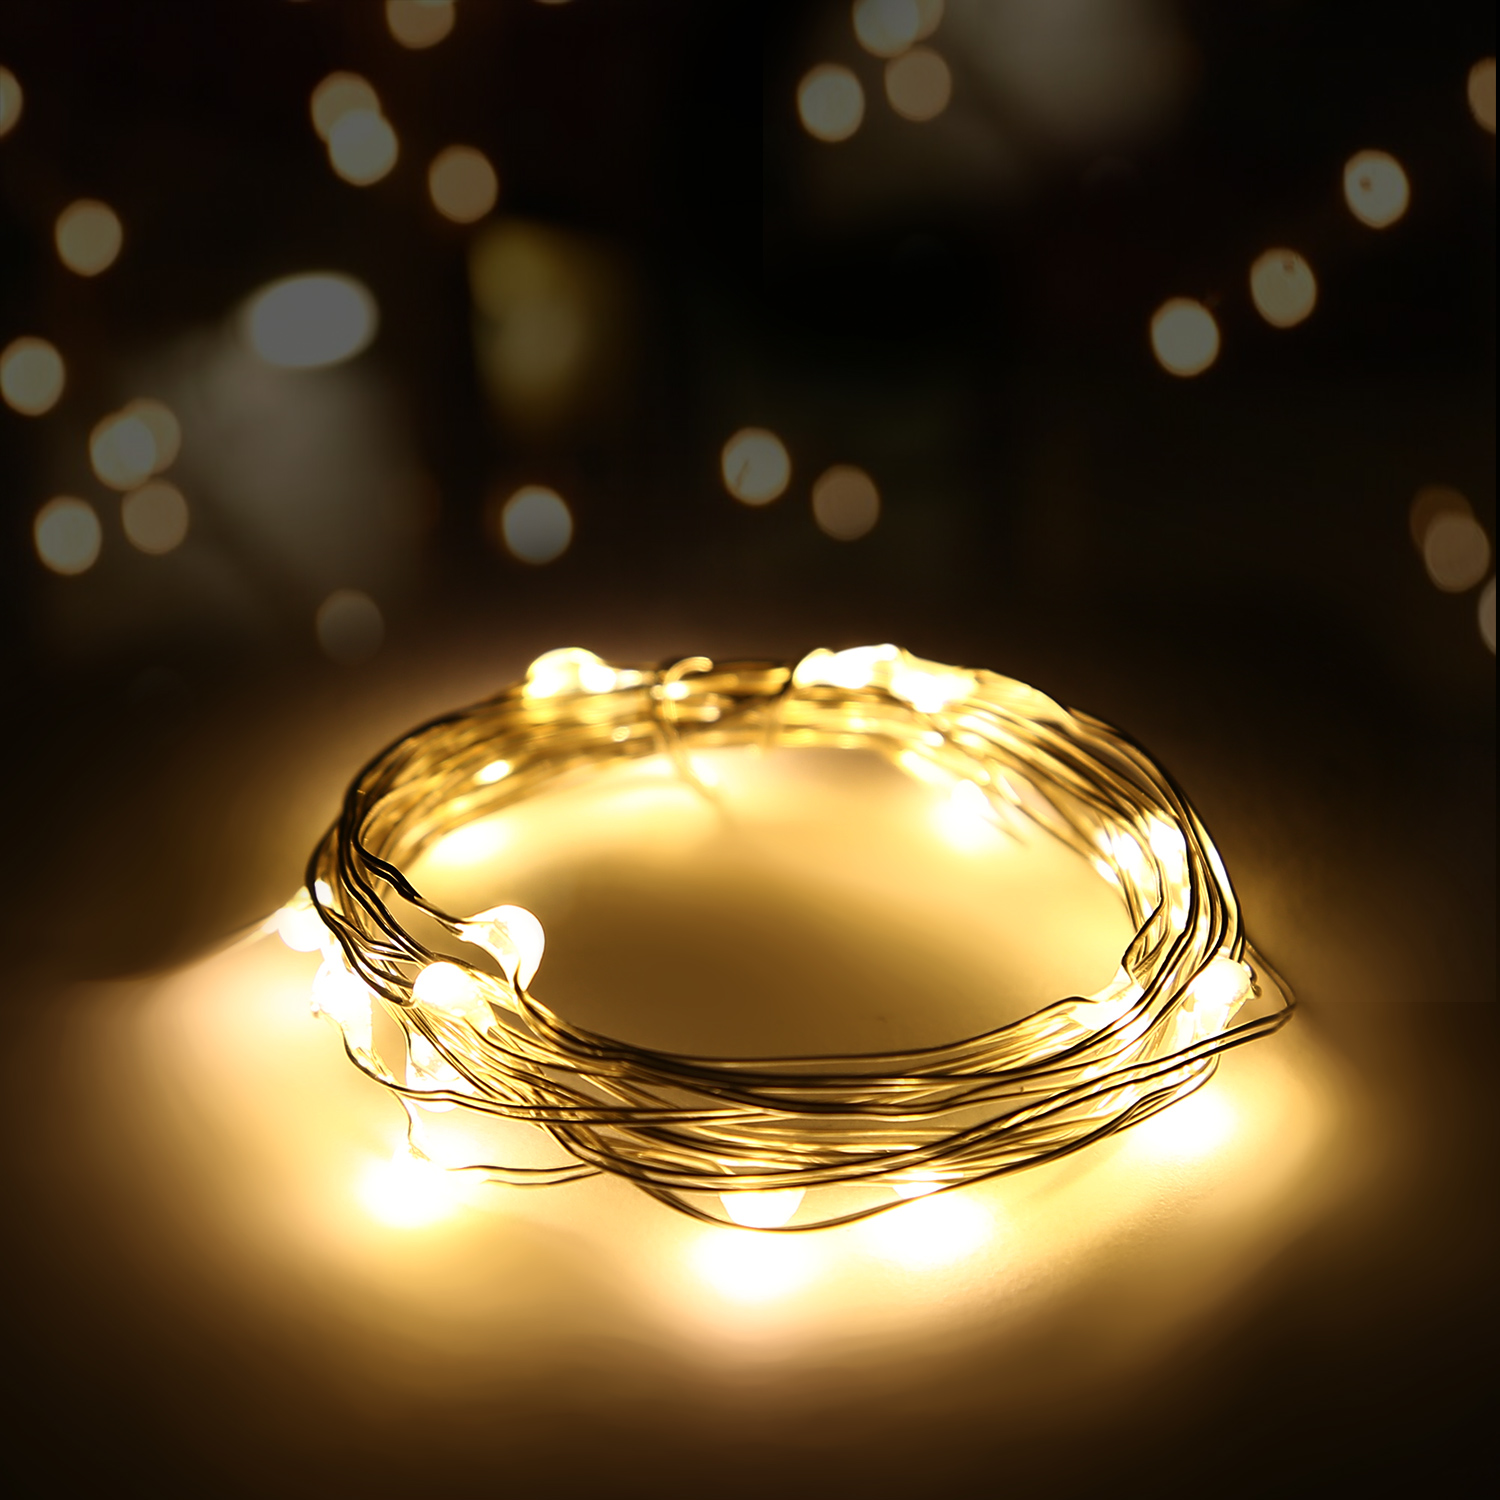 20-1000LED String Fairy Light Wire UK Plug/Battery Operated Xmas Party Decor lot eBay